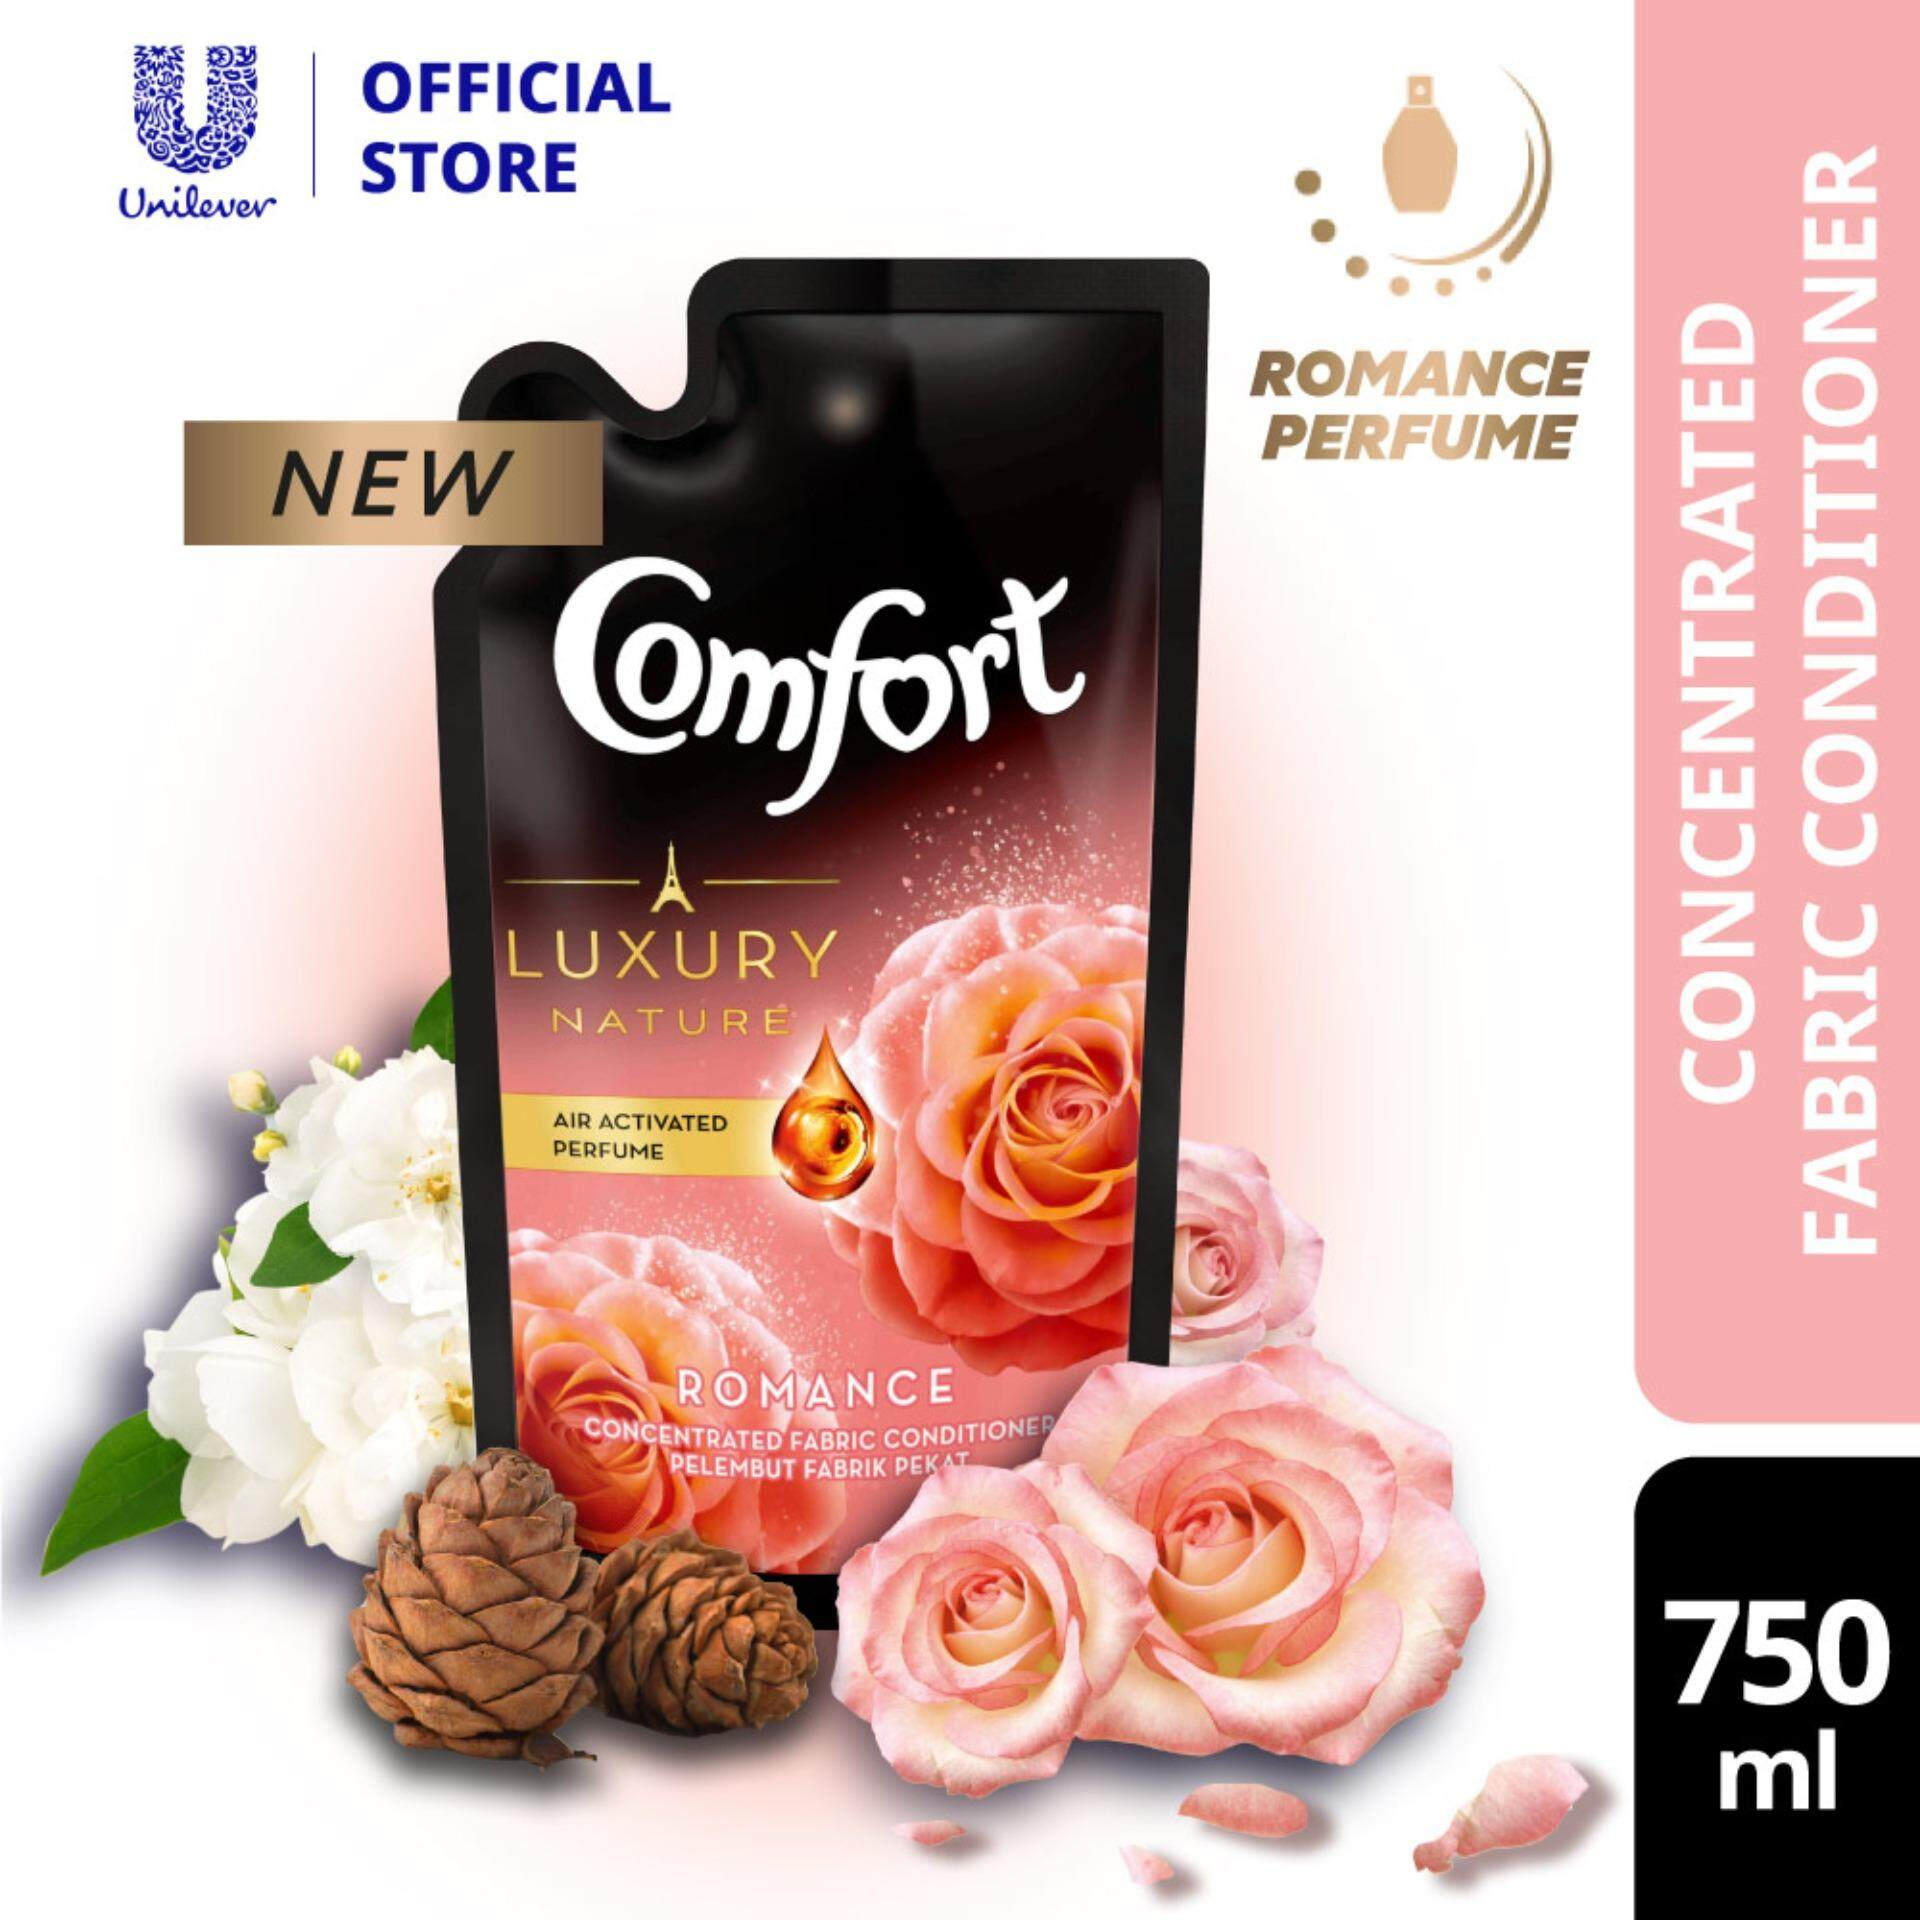 Comfort Luxury Nature Romance Perfume Concentrated Fabric Conditioner Refill 750 ml